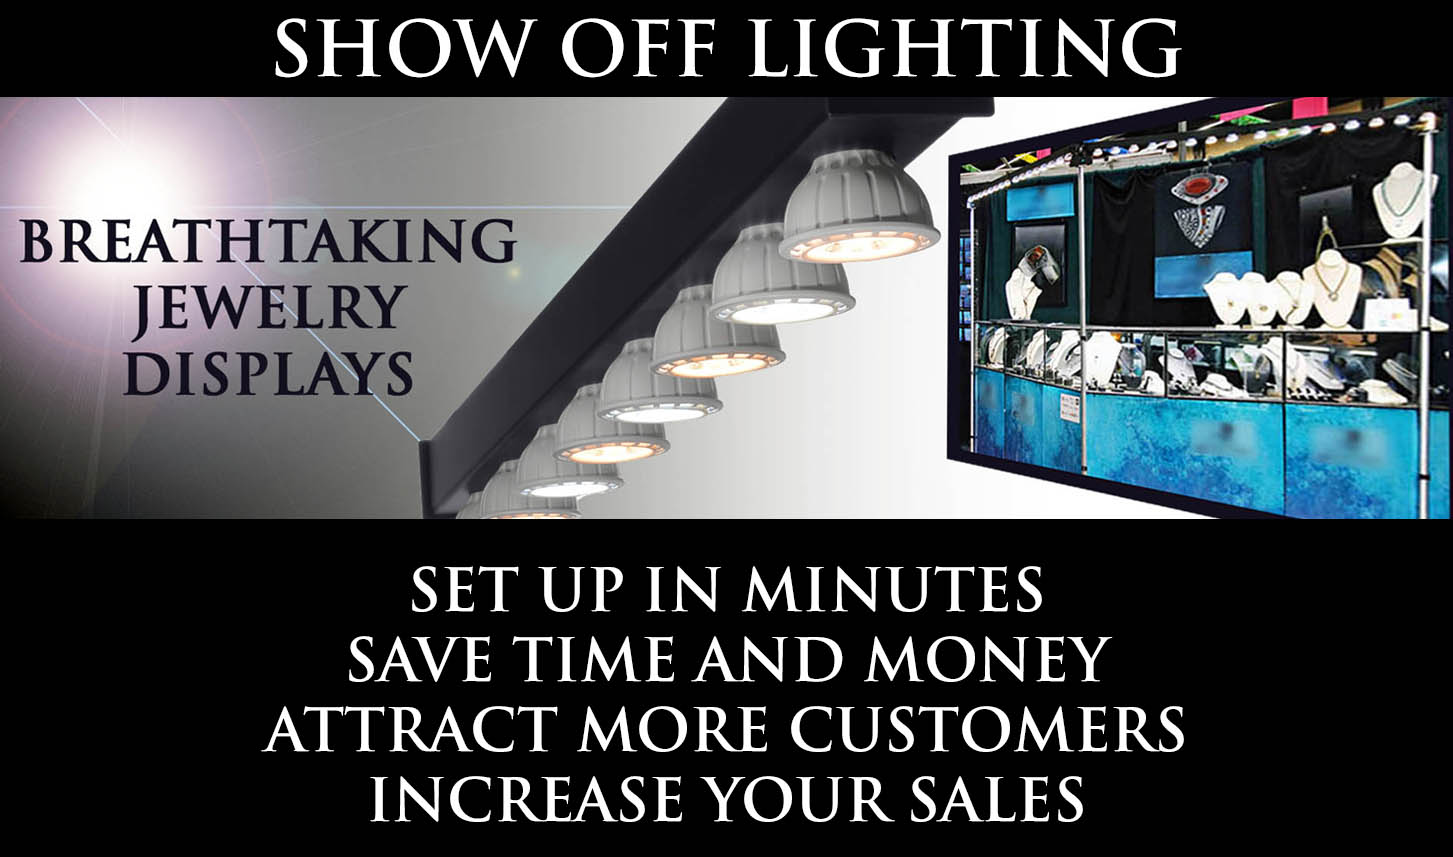 Convention Expo And Trade Show Booth Display Lighting